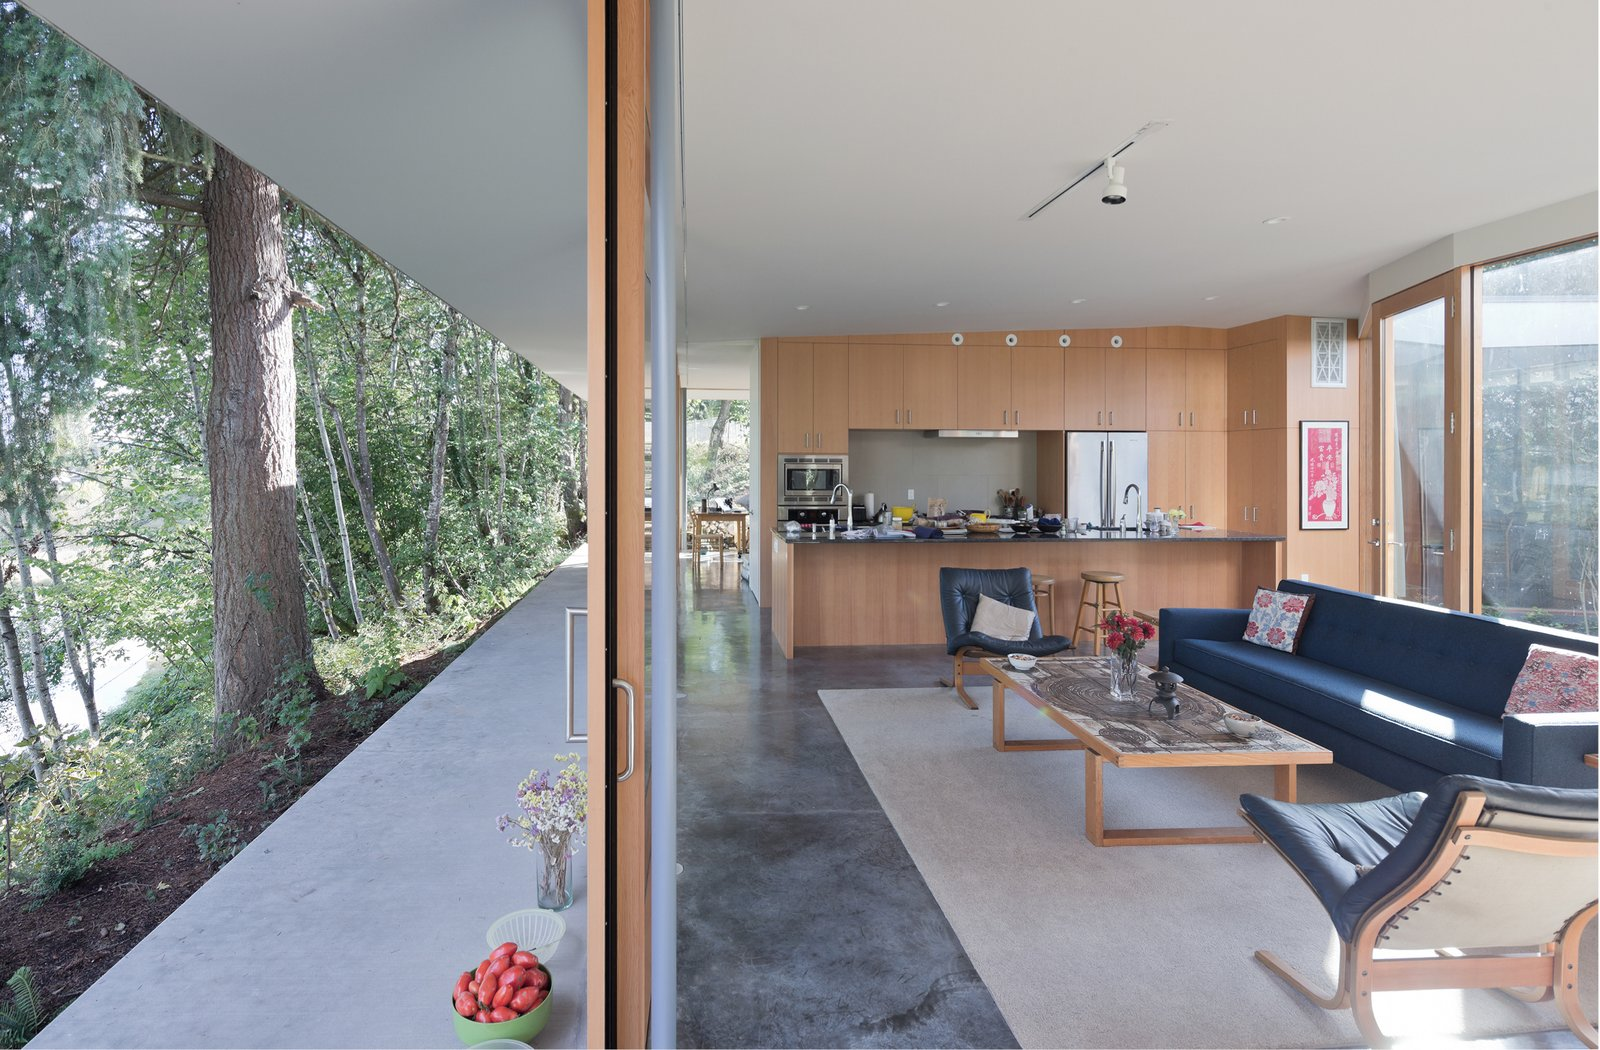 A matrix of rooms separate and connect around the L-shaped bathroom and storage cores made flexible by concealed doors at their ends.   The Courtyard House